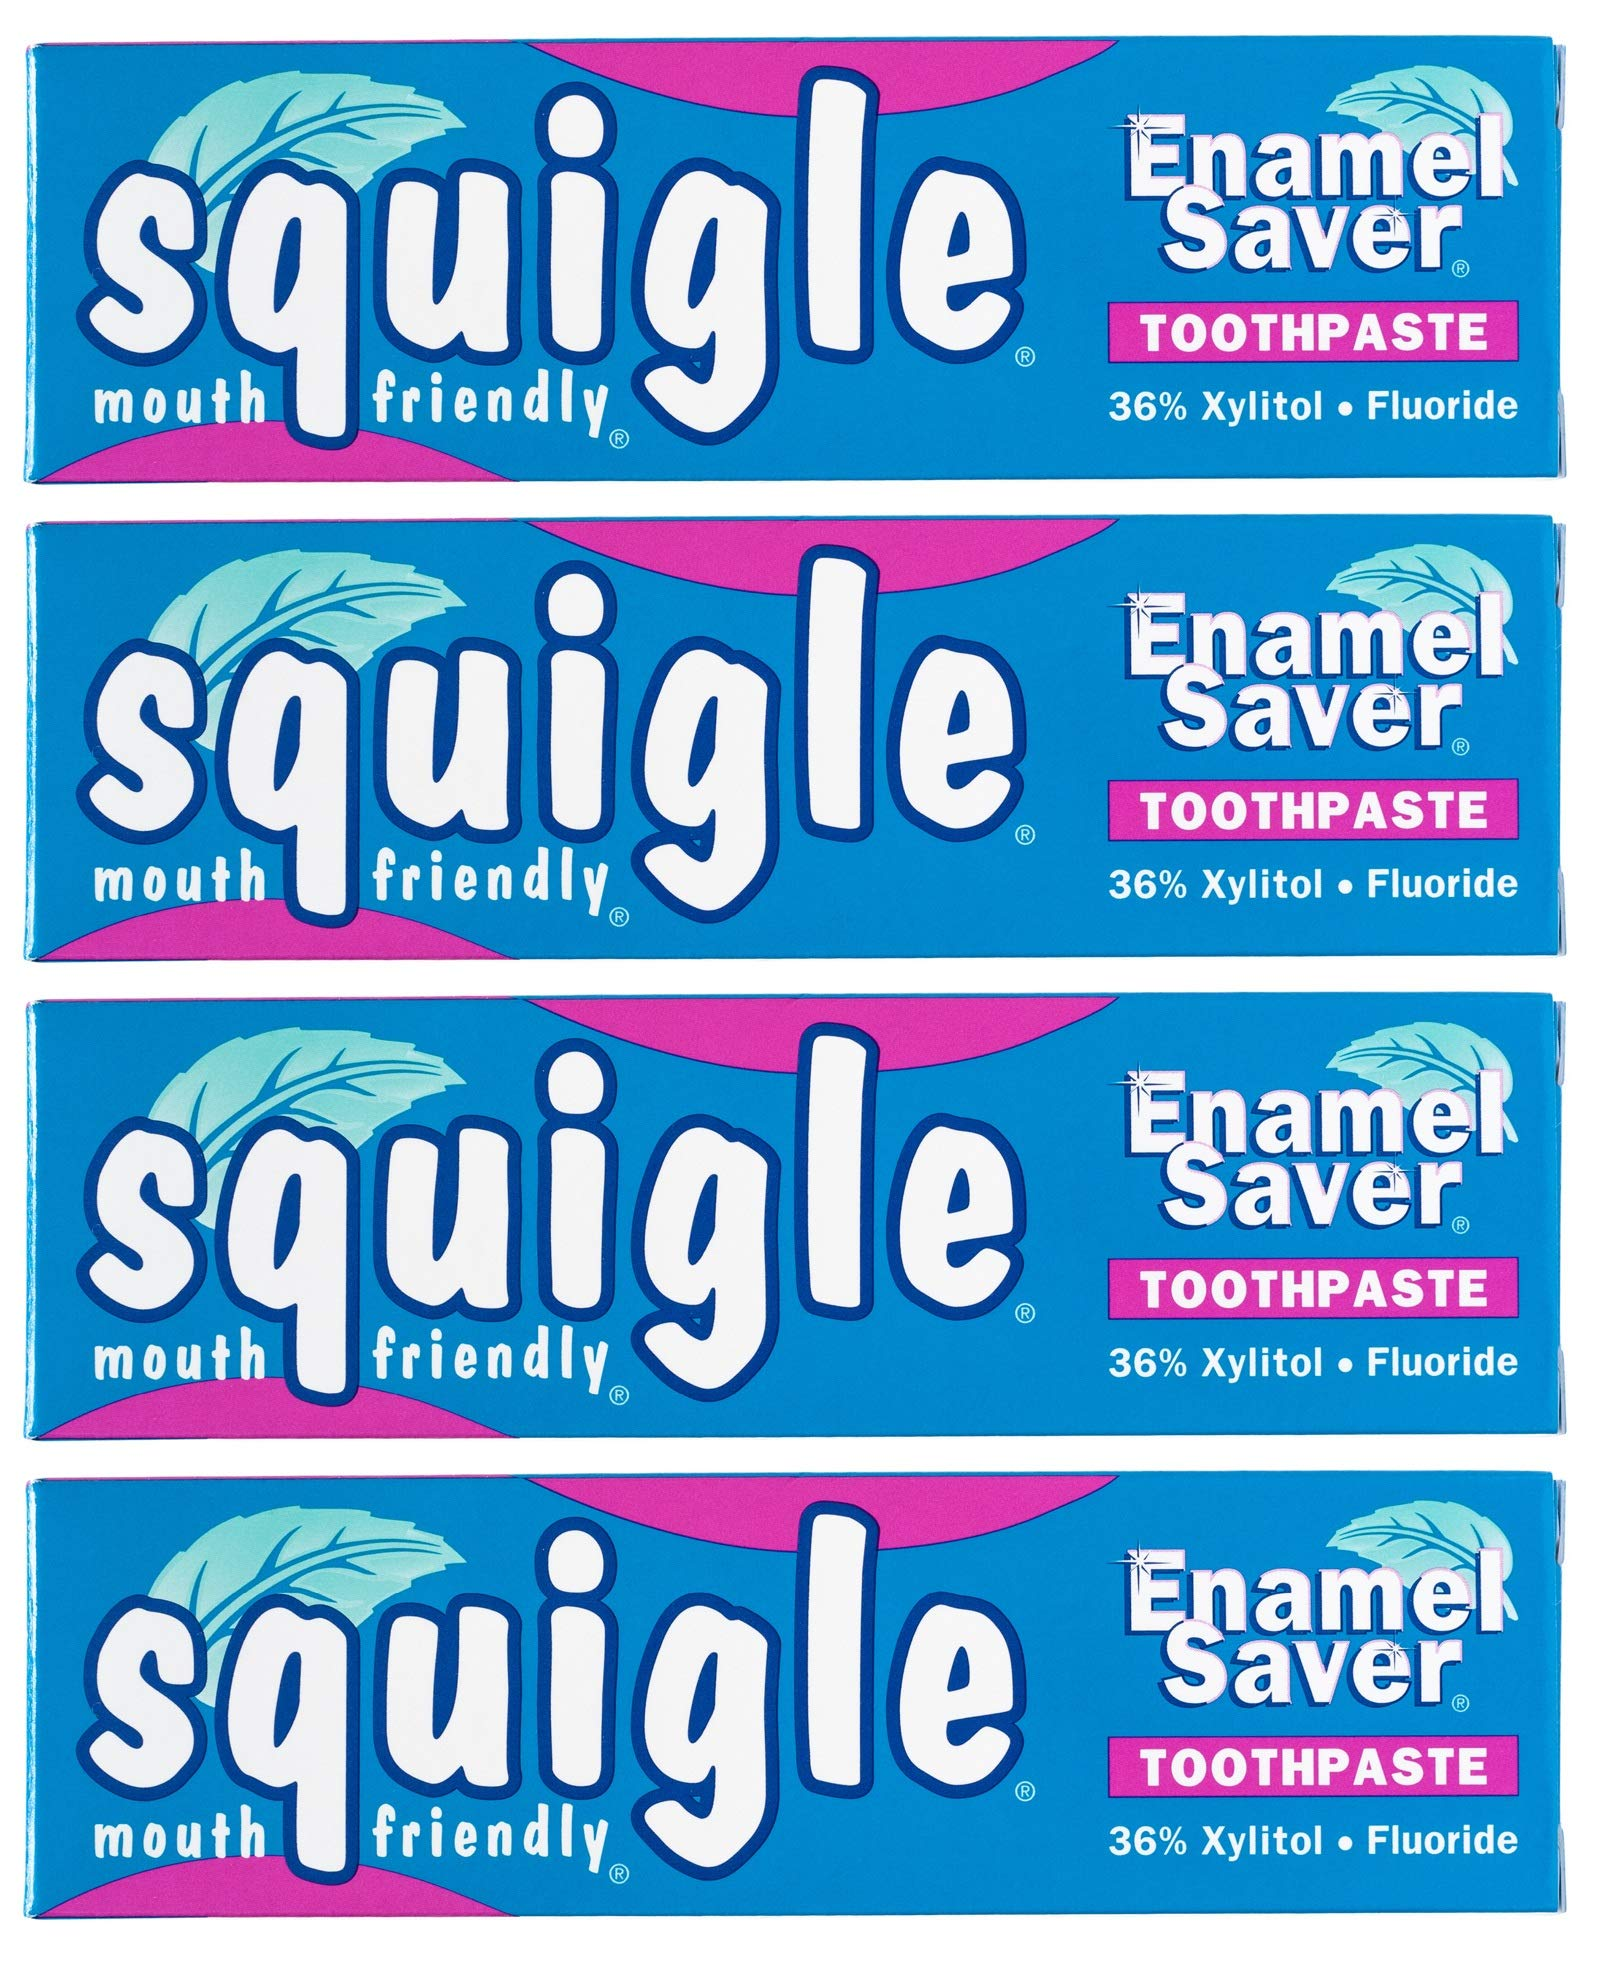 Squigle Enamel Saver Toothpaste (Helps Prevent Canker Sores, Perioral Dermatitis, Bad Breath, Chapped Lips) - 4 Pack